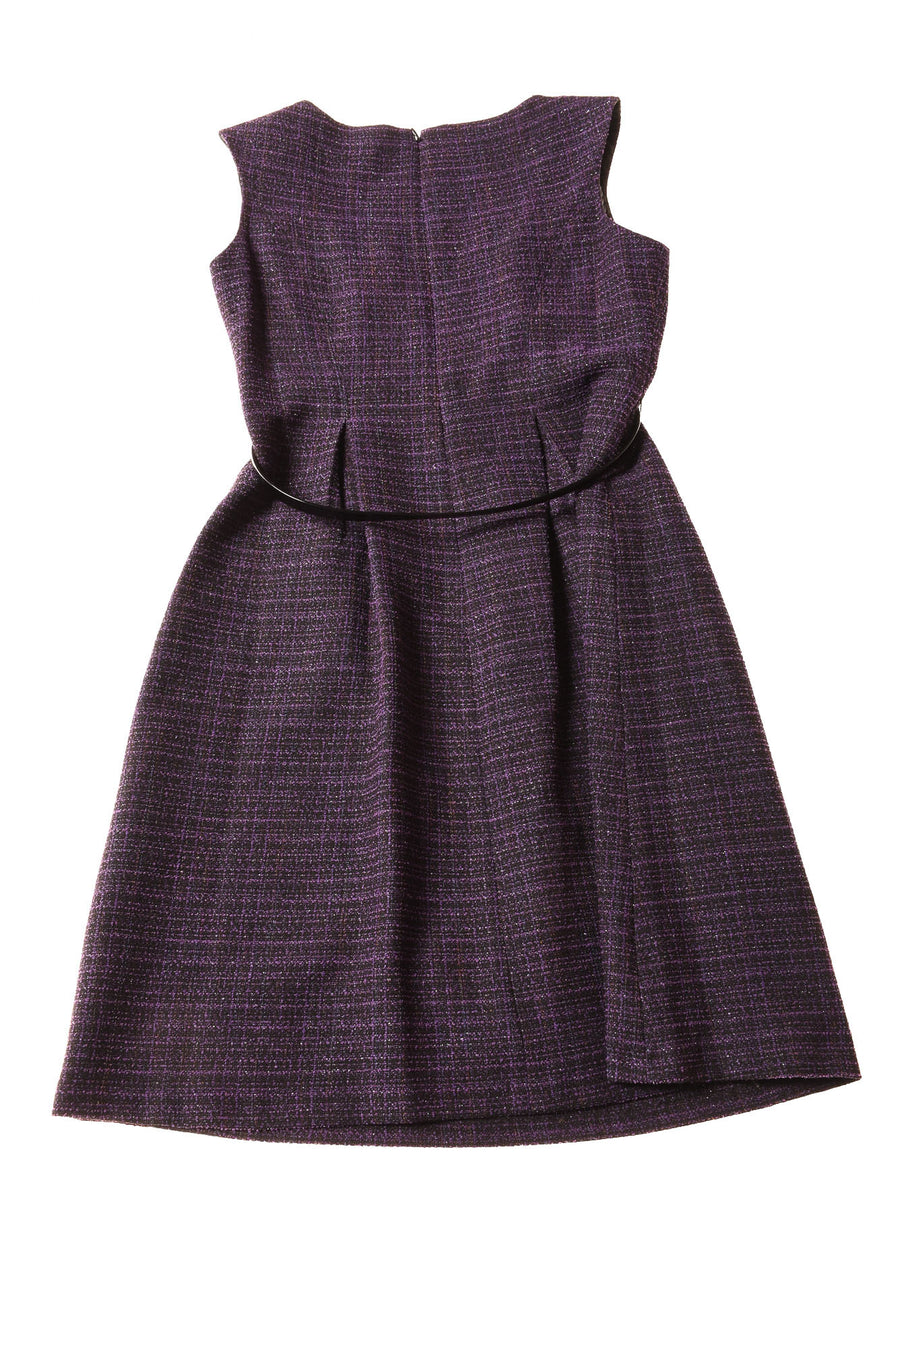 USED Kasper Women's Dress 6 Purple & Black / Print